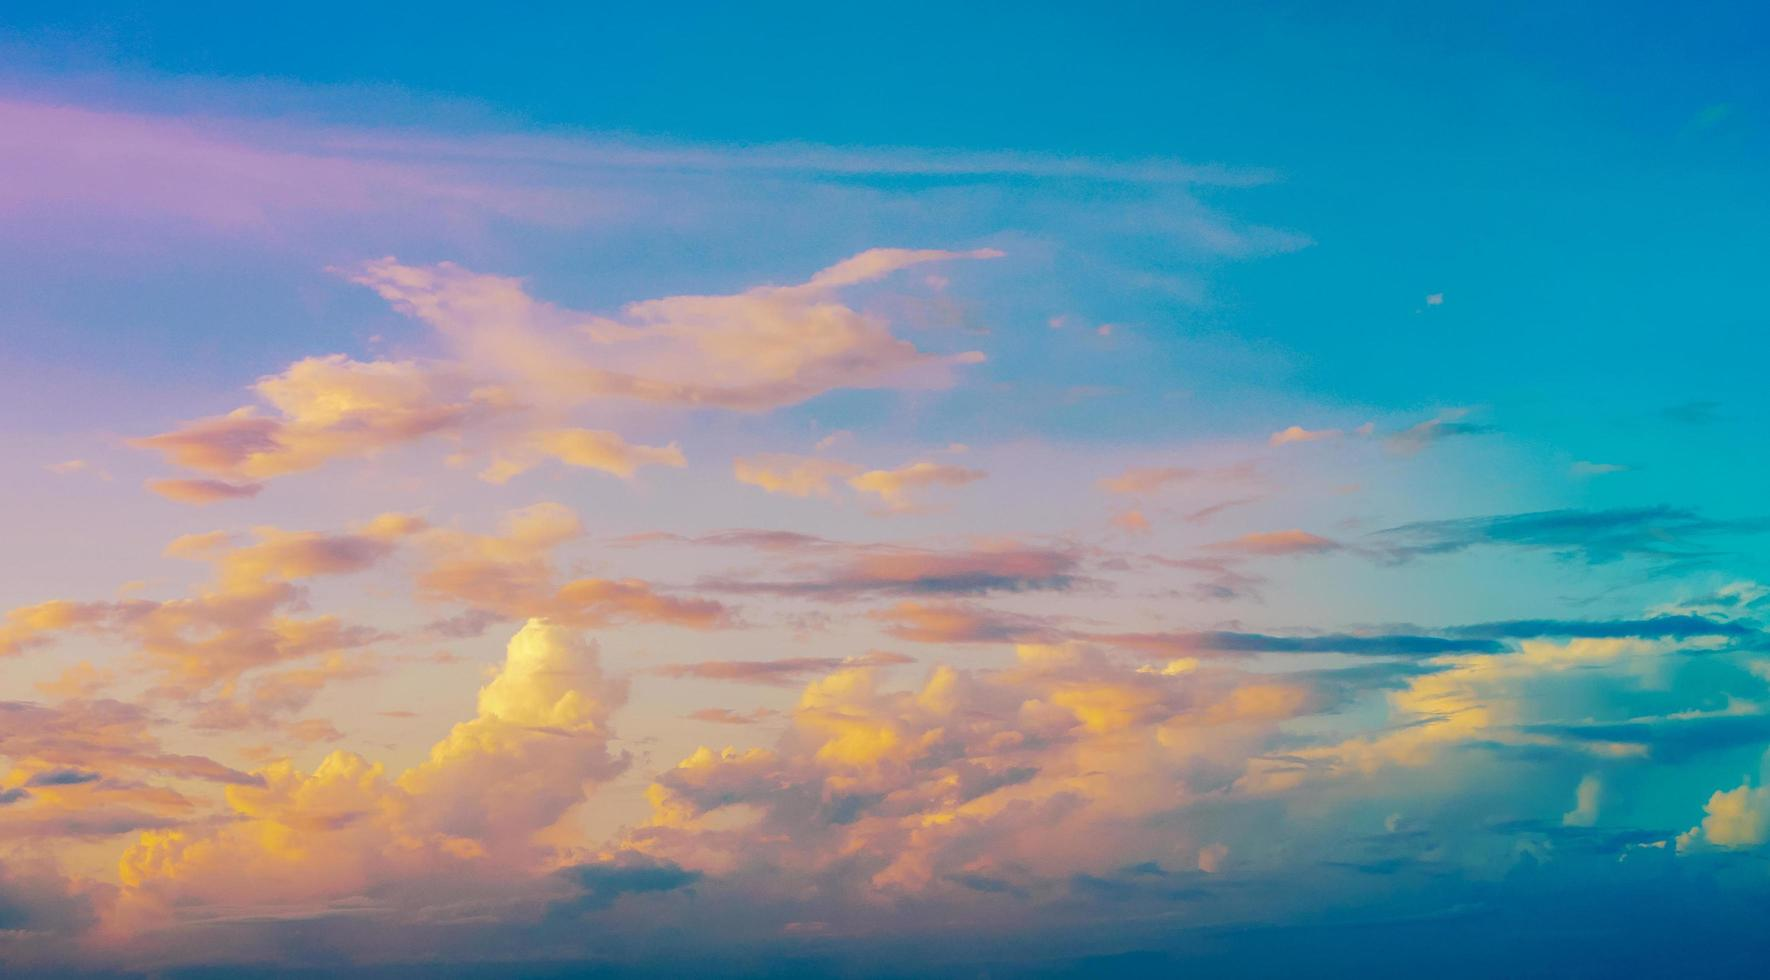 Saturated colors of blue sky in summer photo